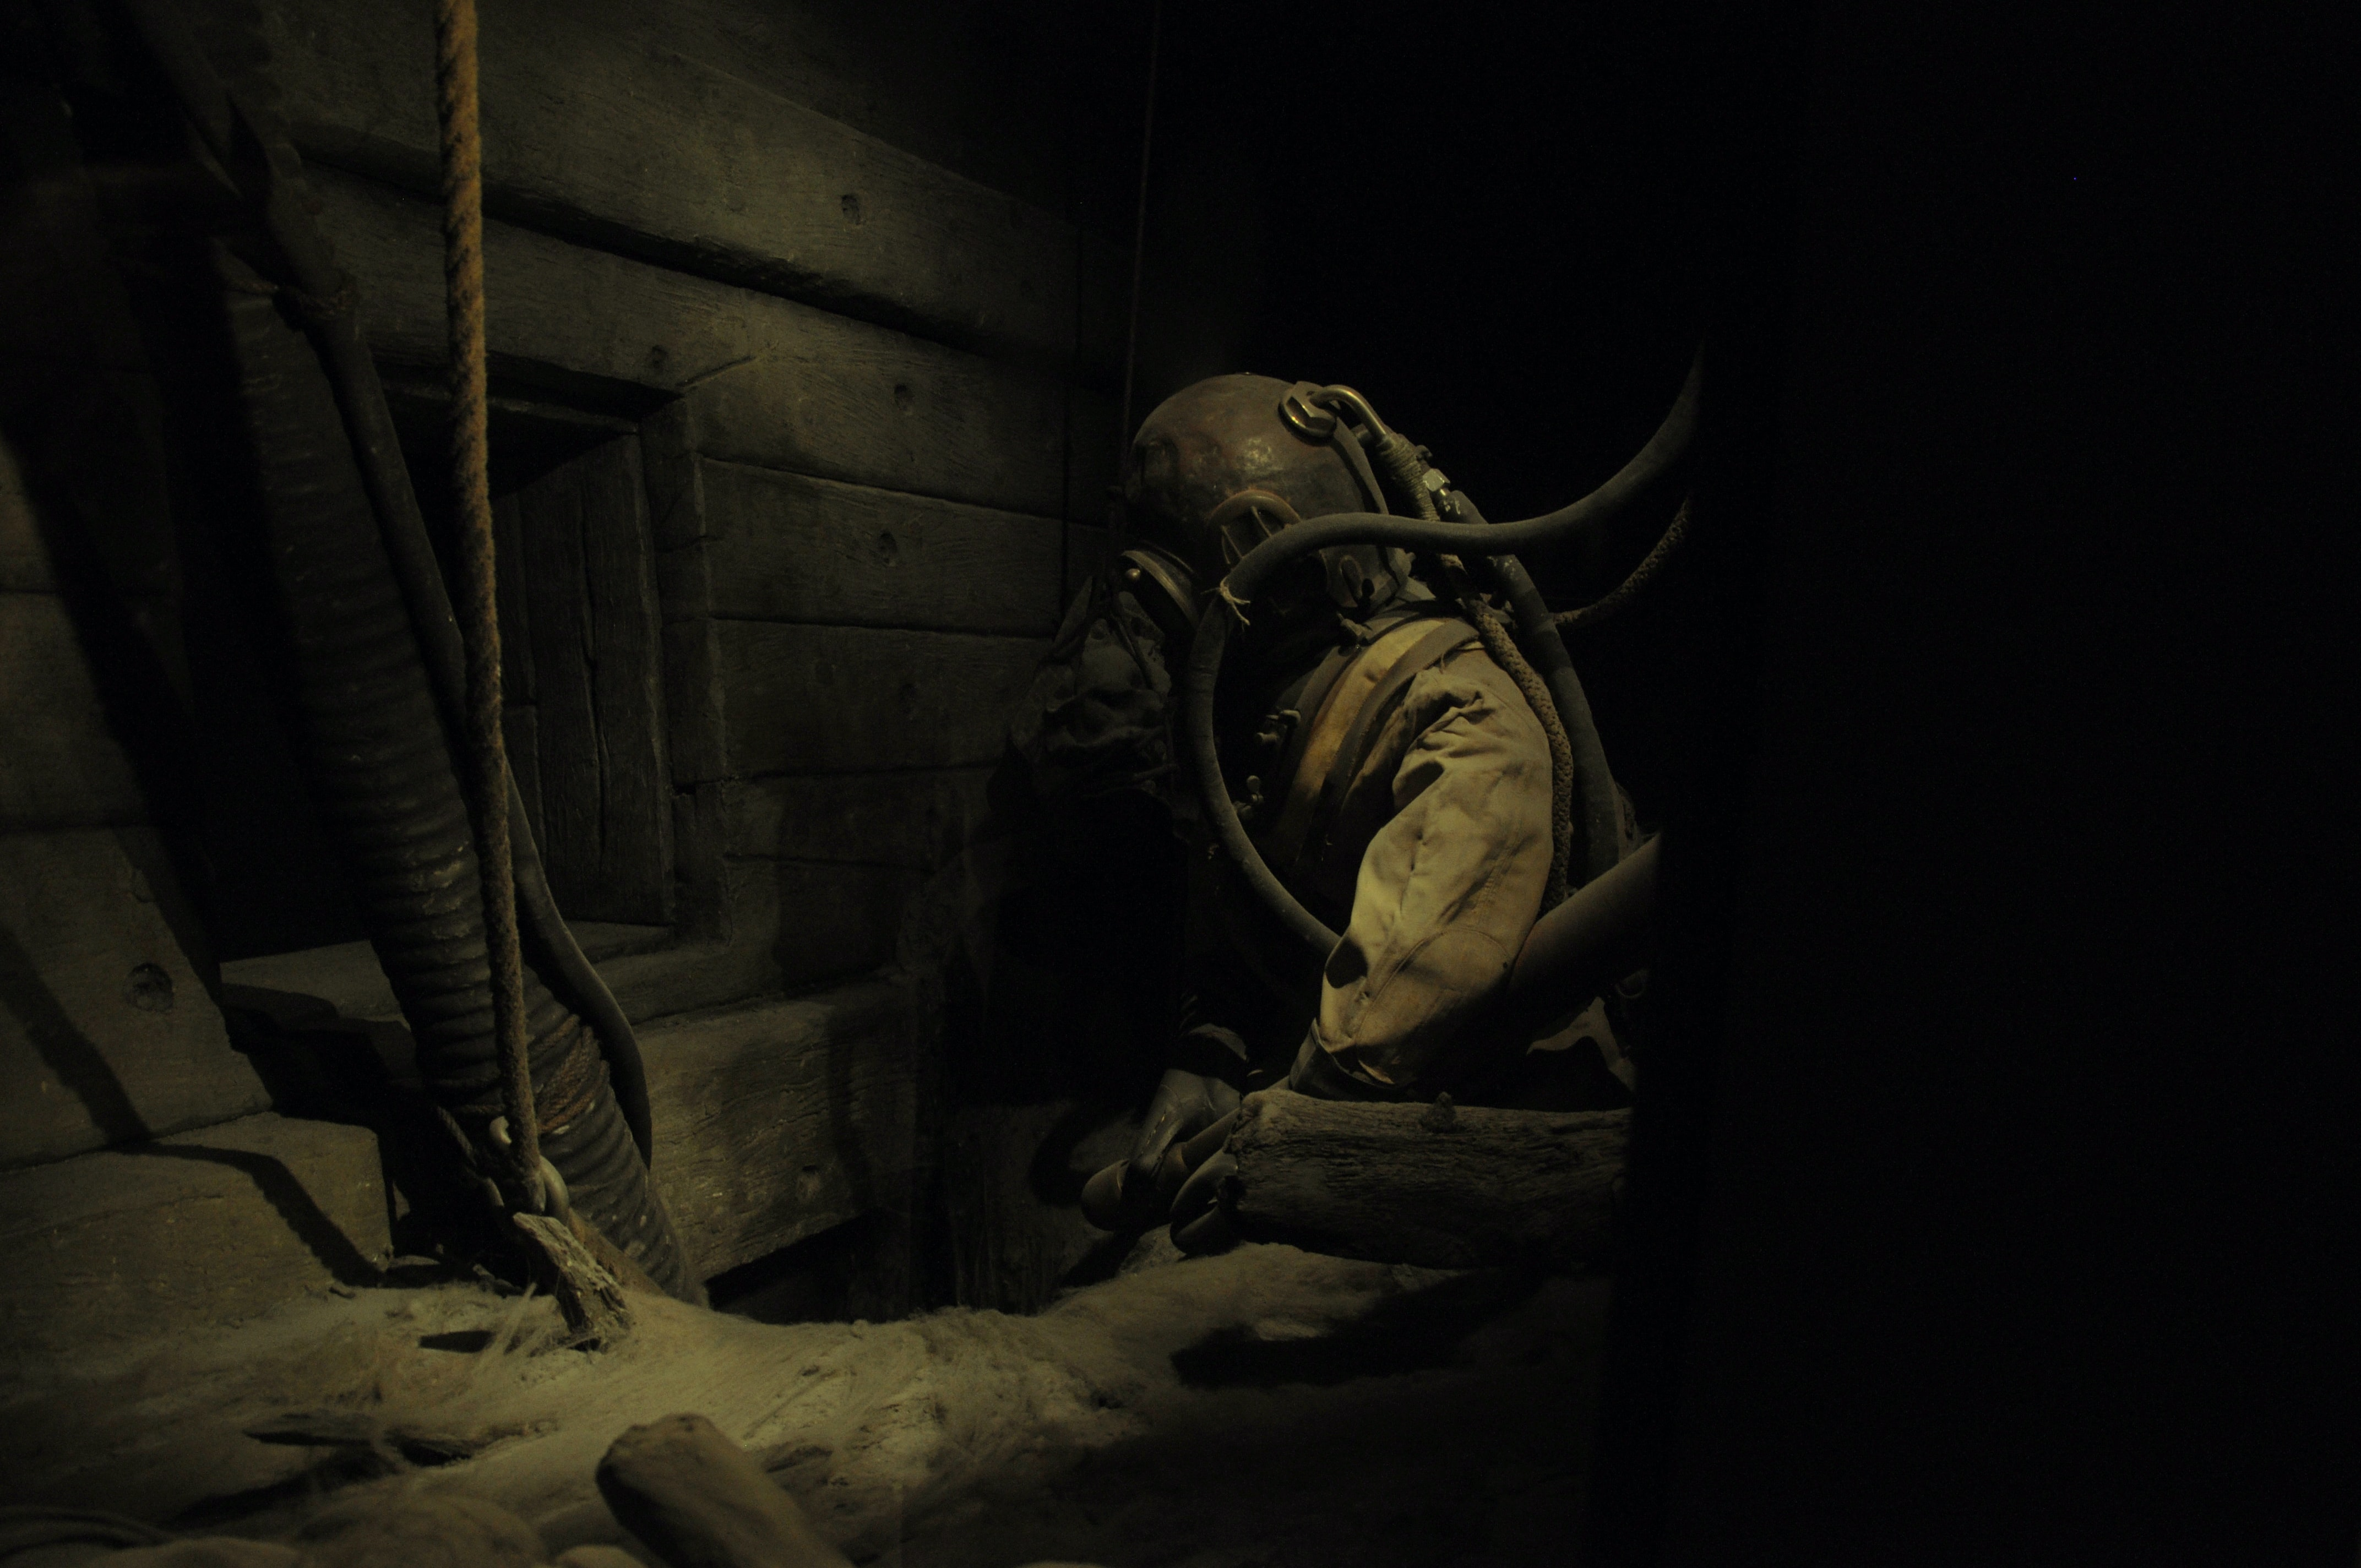 A rusty antique diver suit in a dark basement